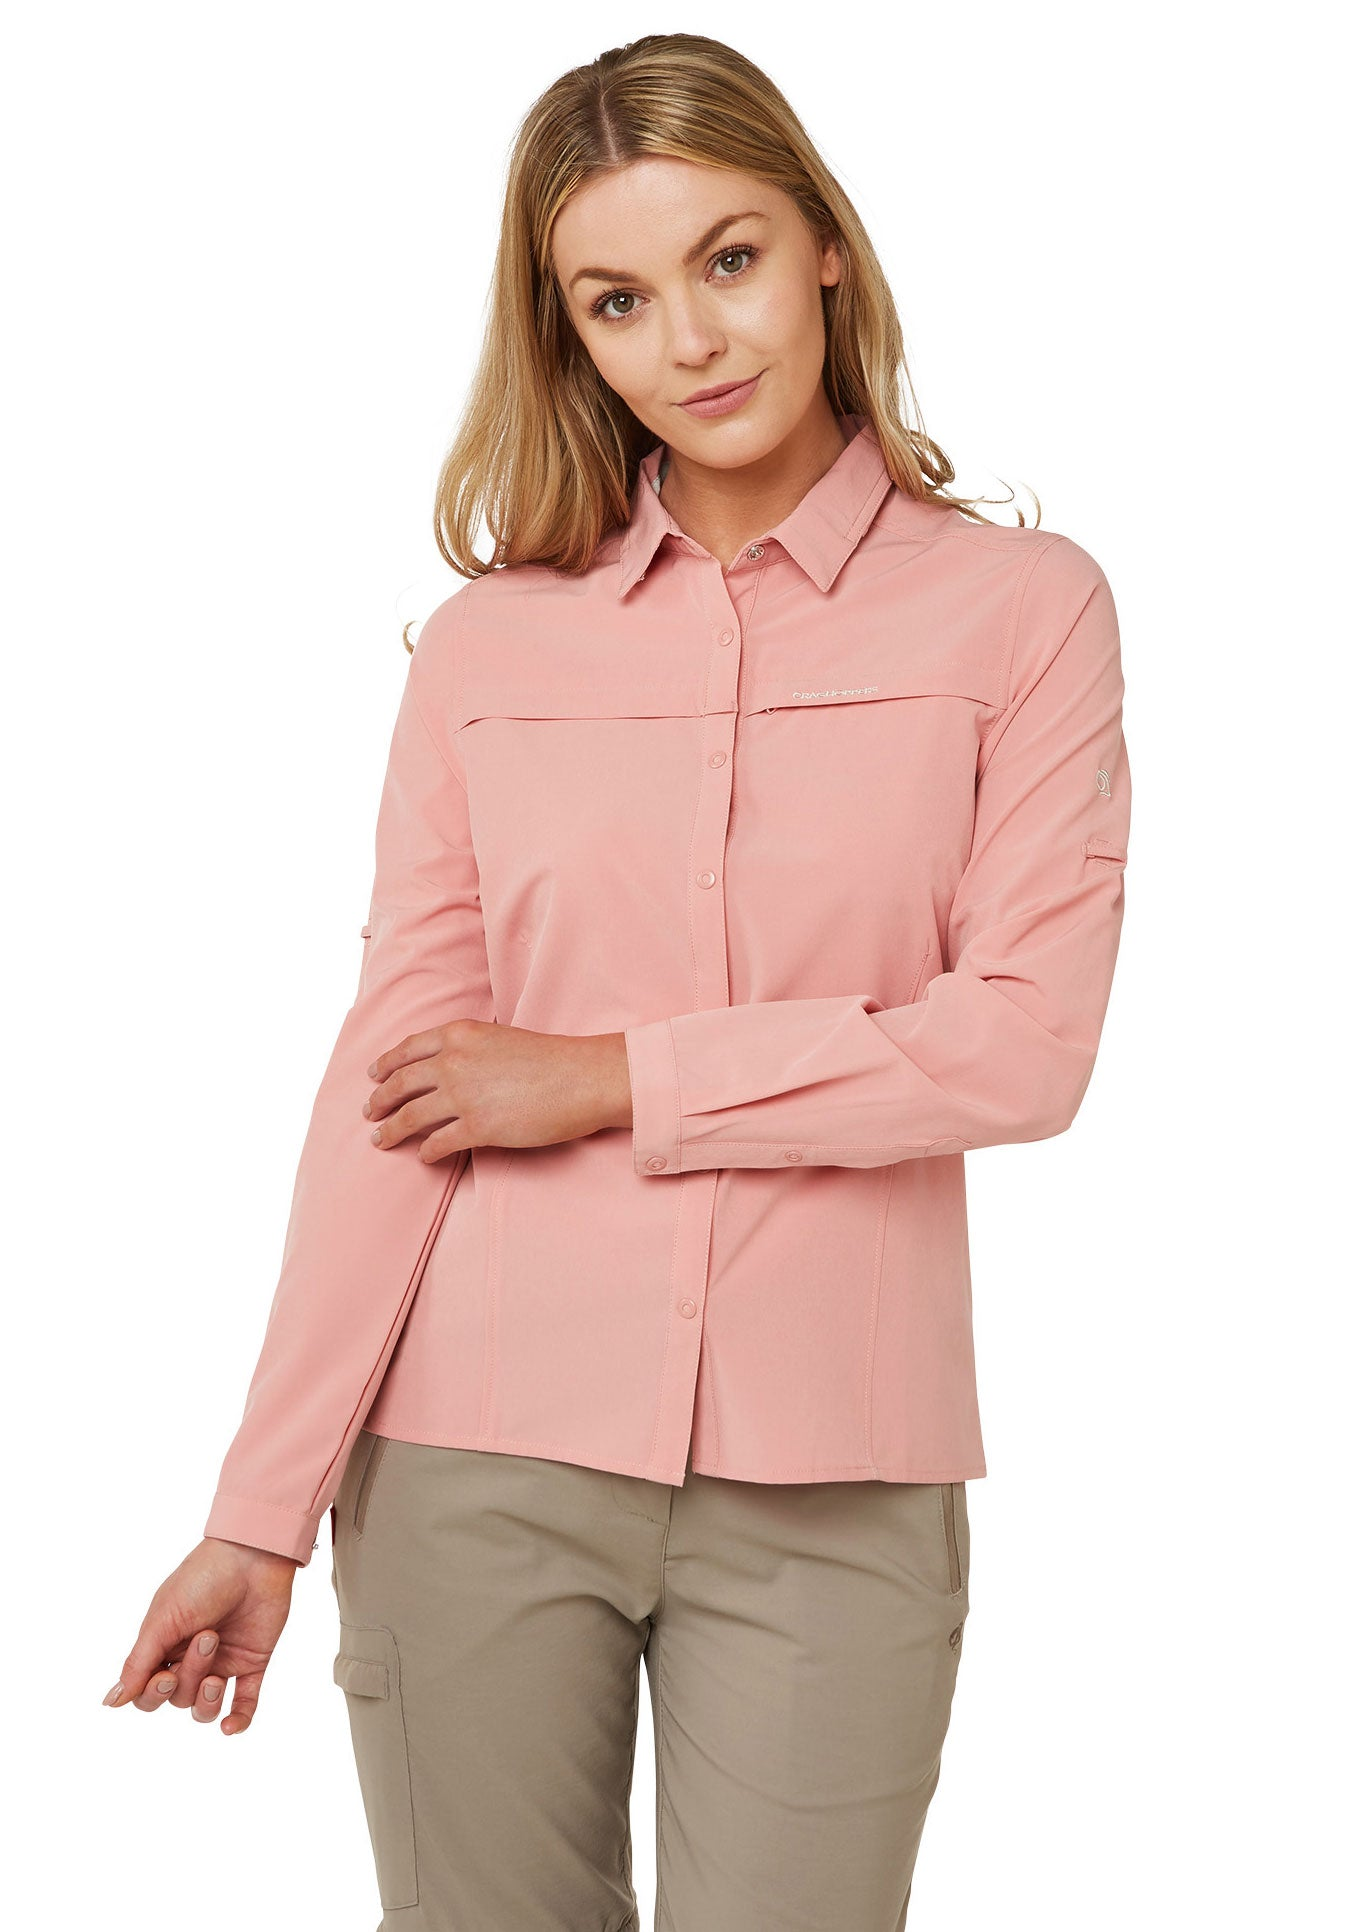 Rosette Ladies Pro II Shirt by Craghoppers